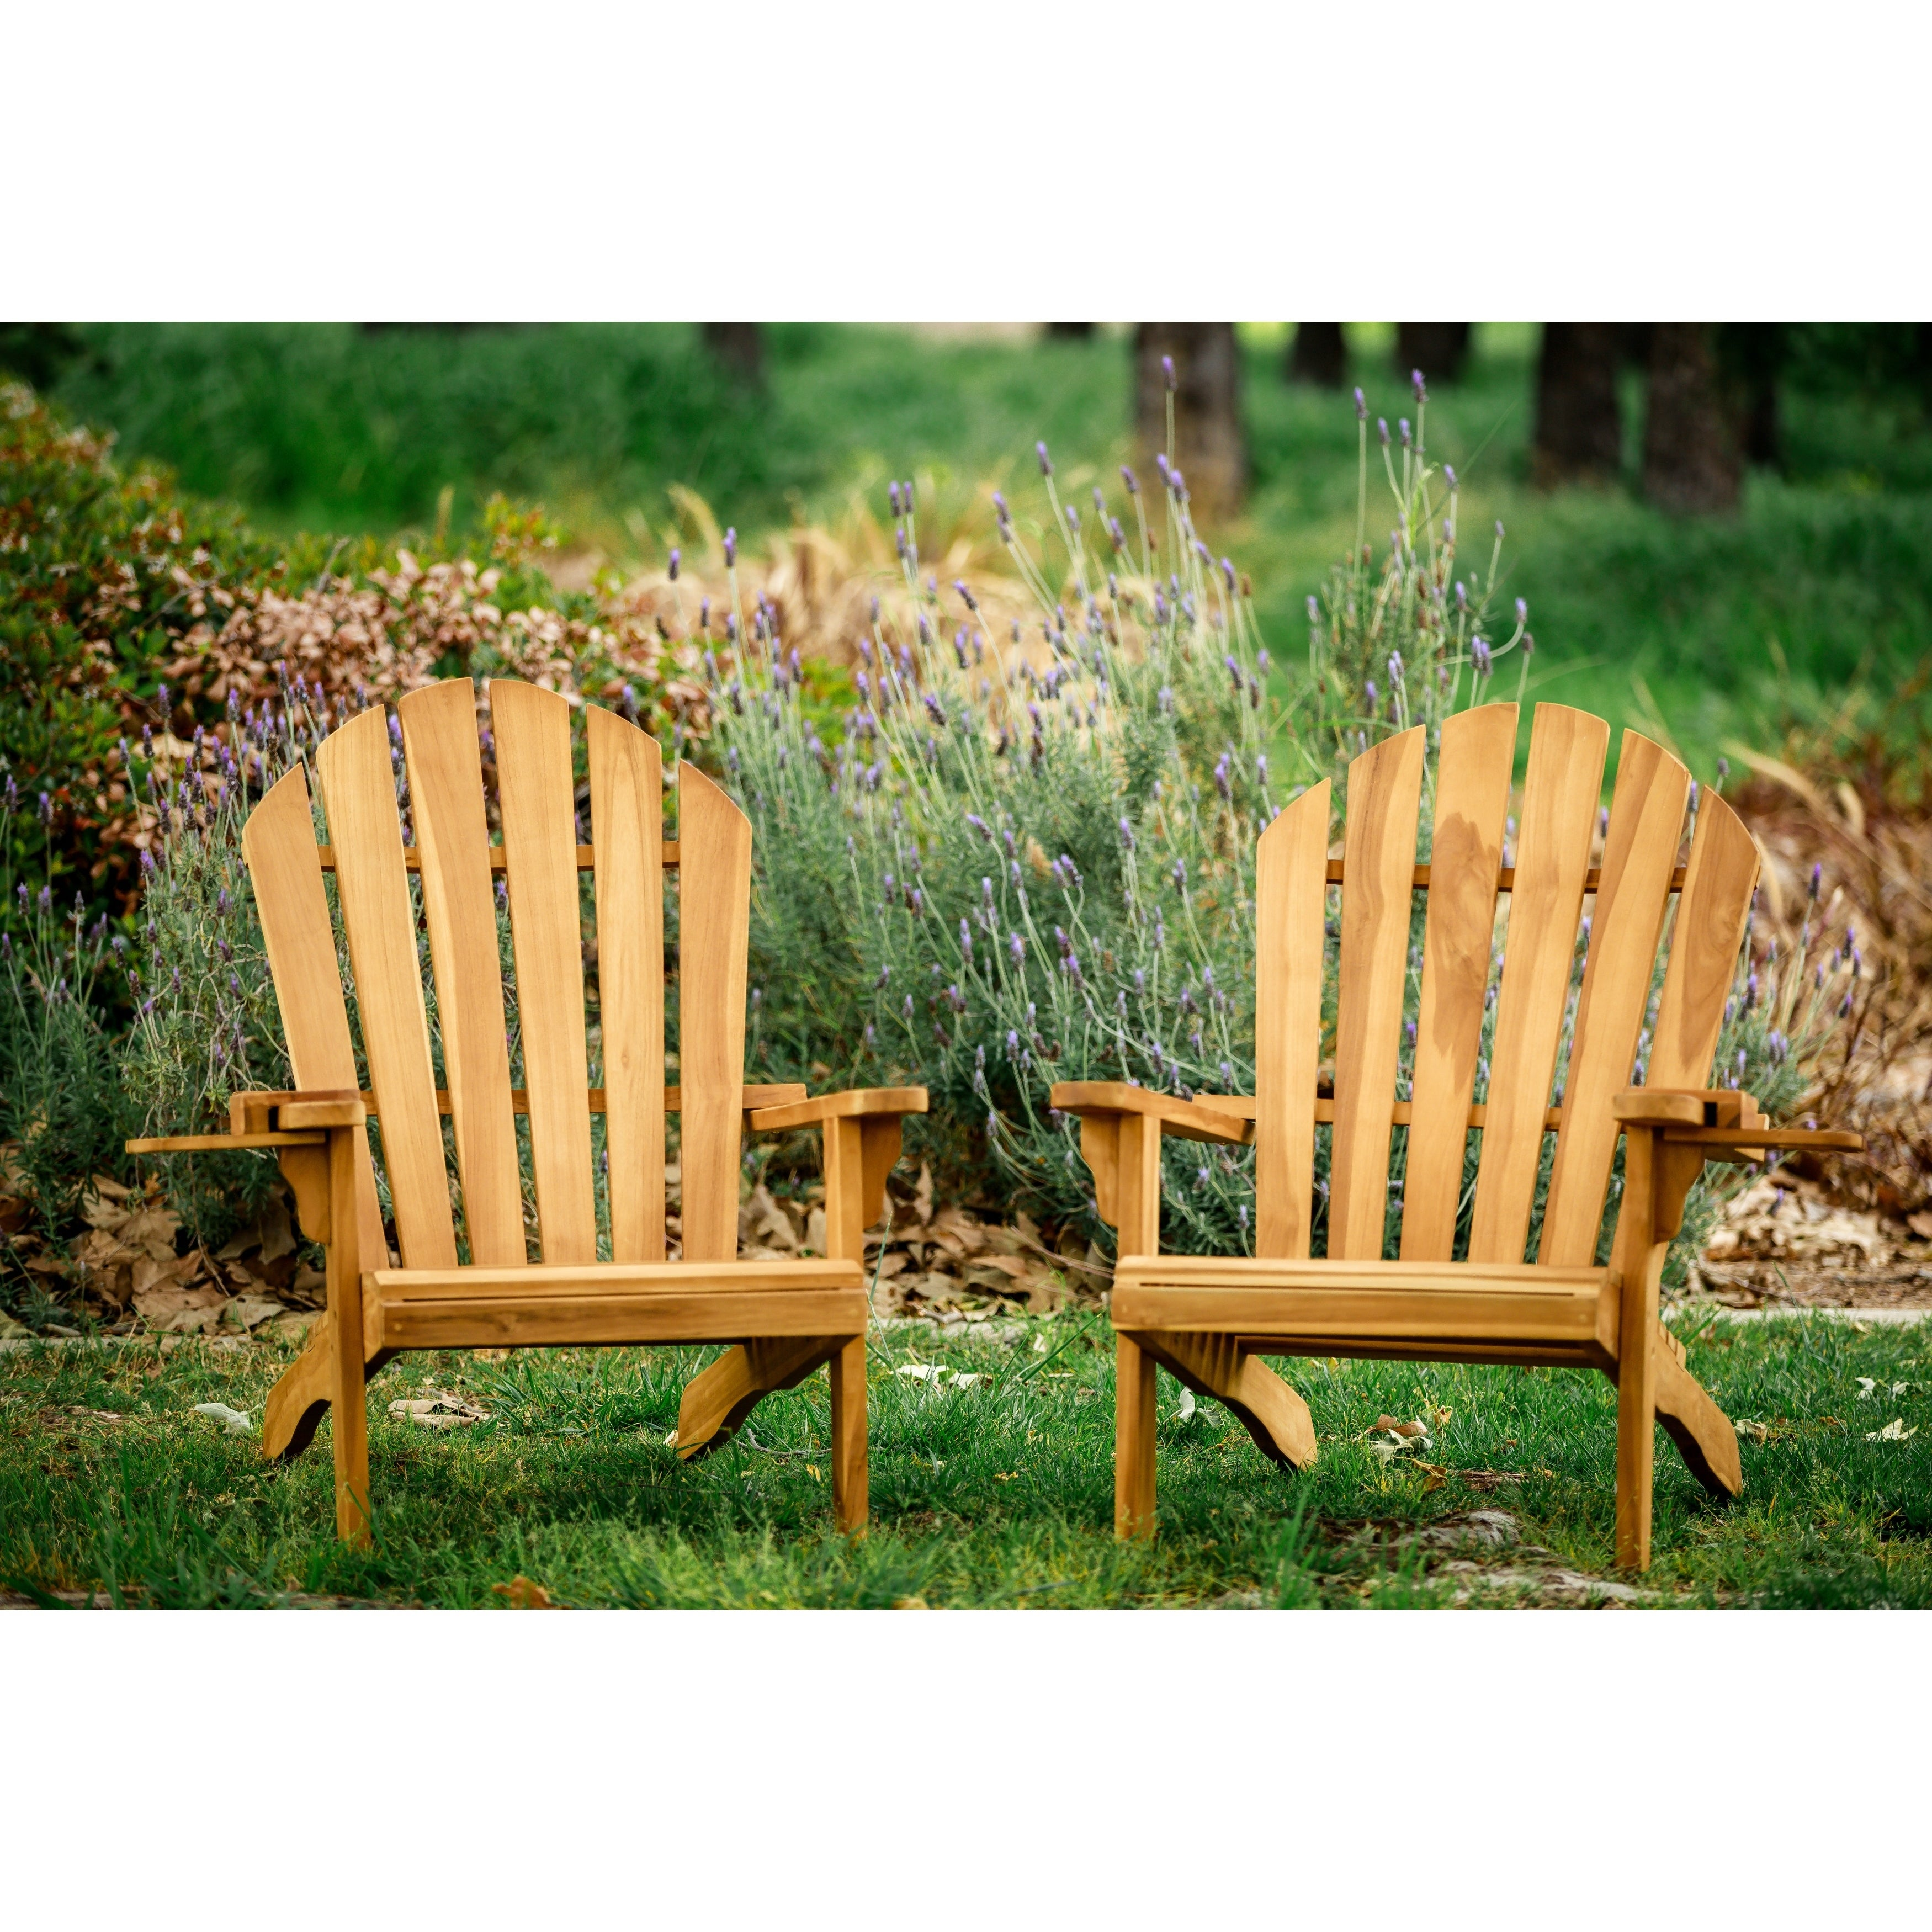 Redondo Teak Wood Adirondack Chair And Wine Holder Combo